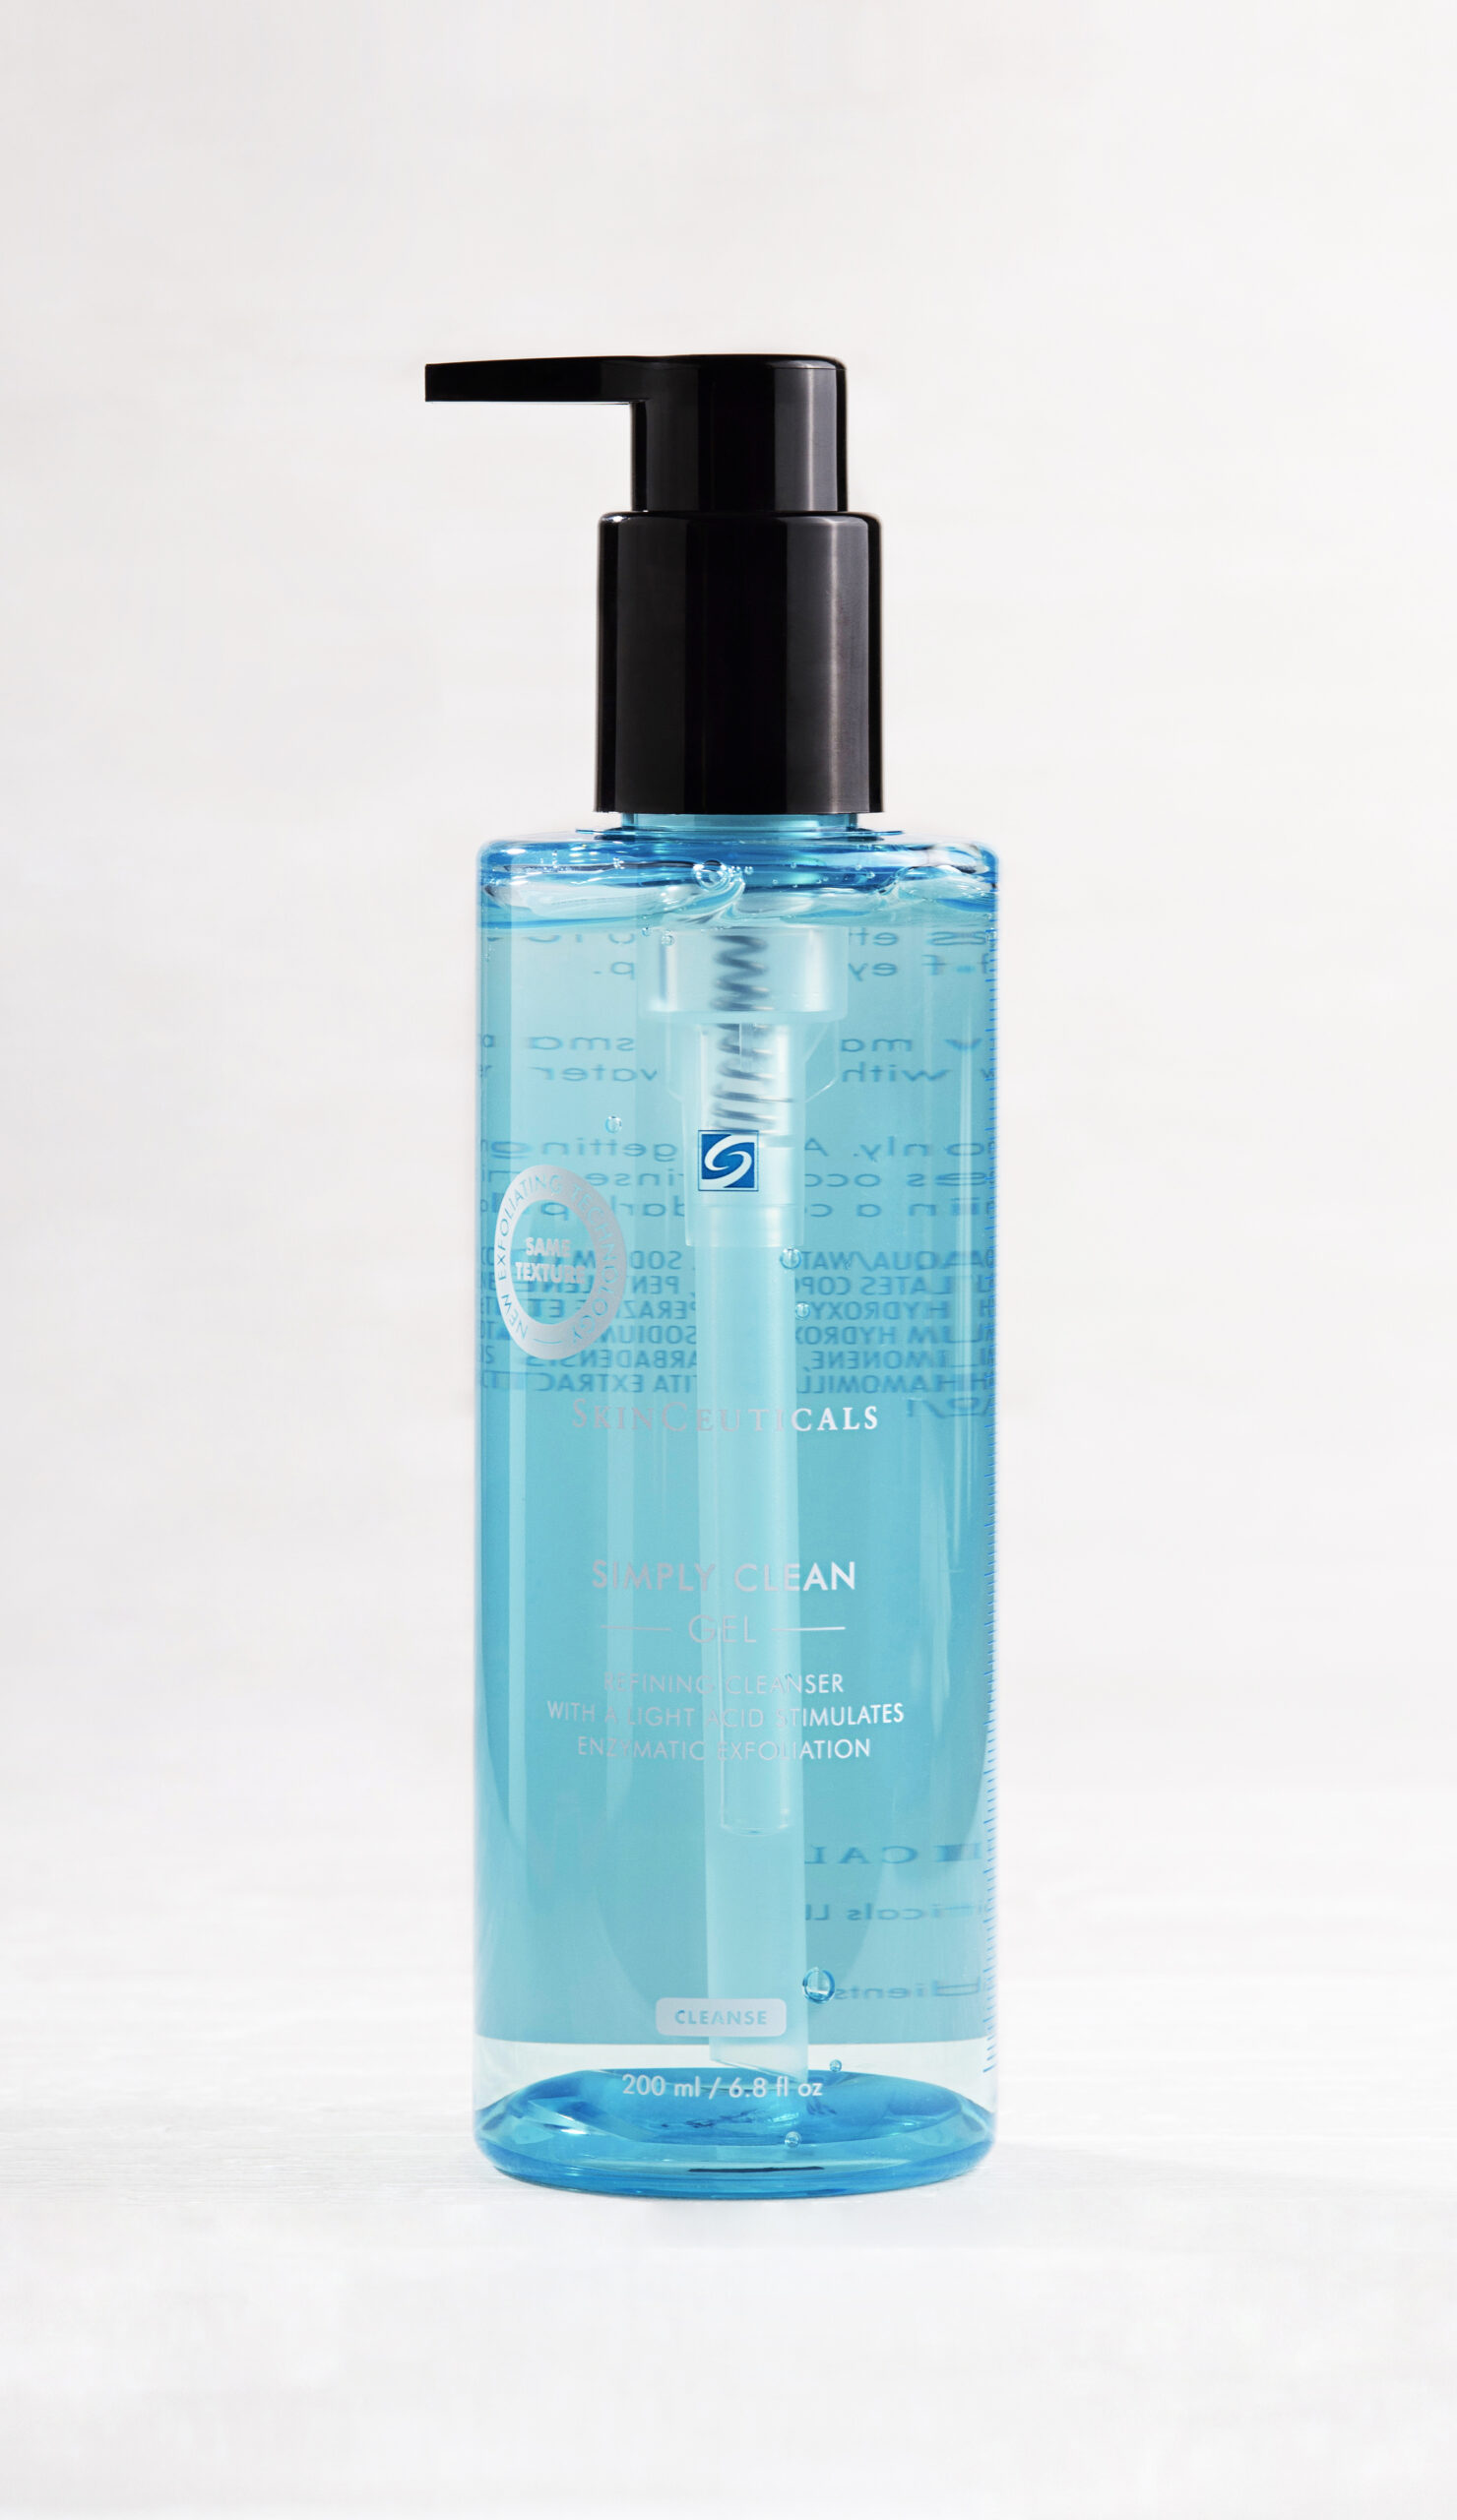 SKIN Las Vegas Med Spa - ORDER Skinceuticals Simply clean cleanser for oily skin